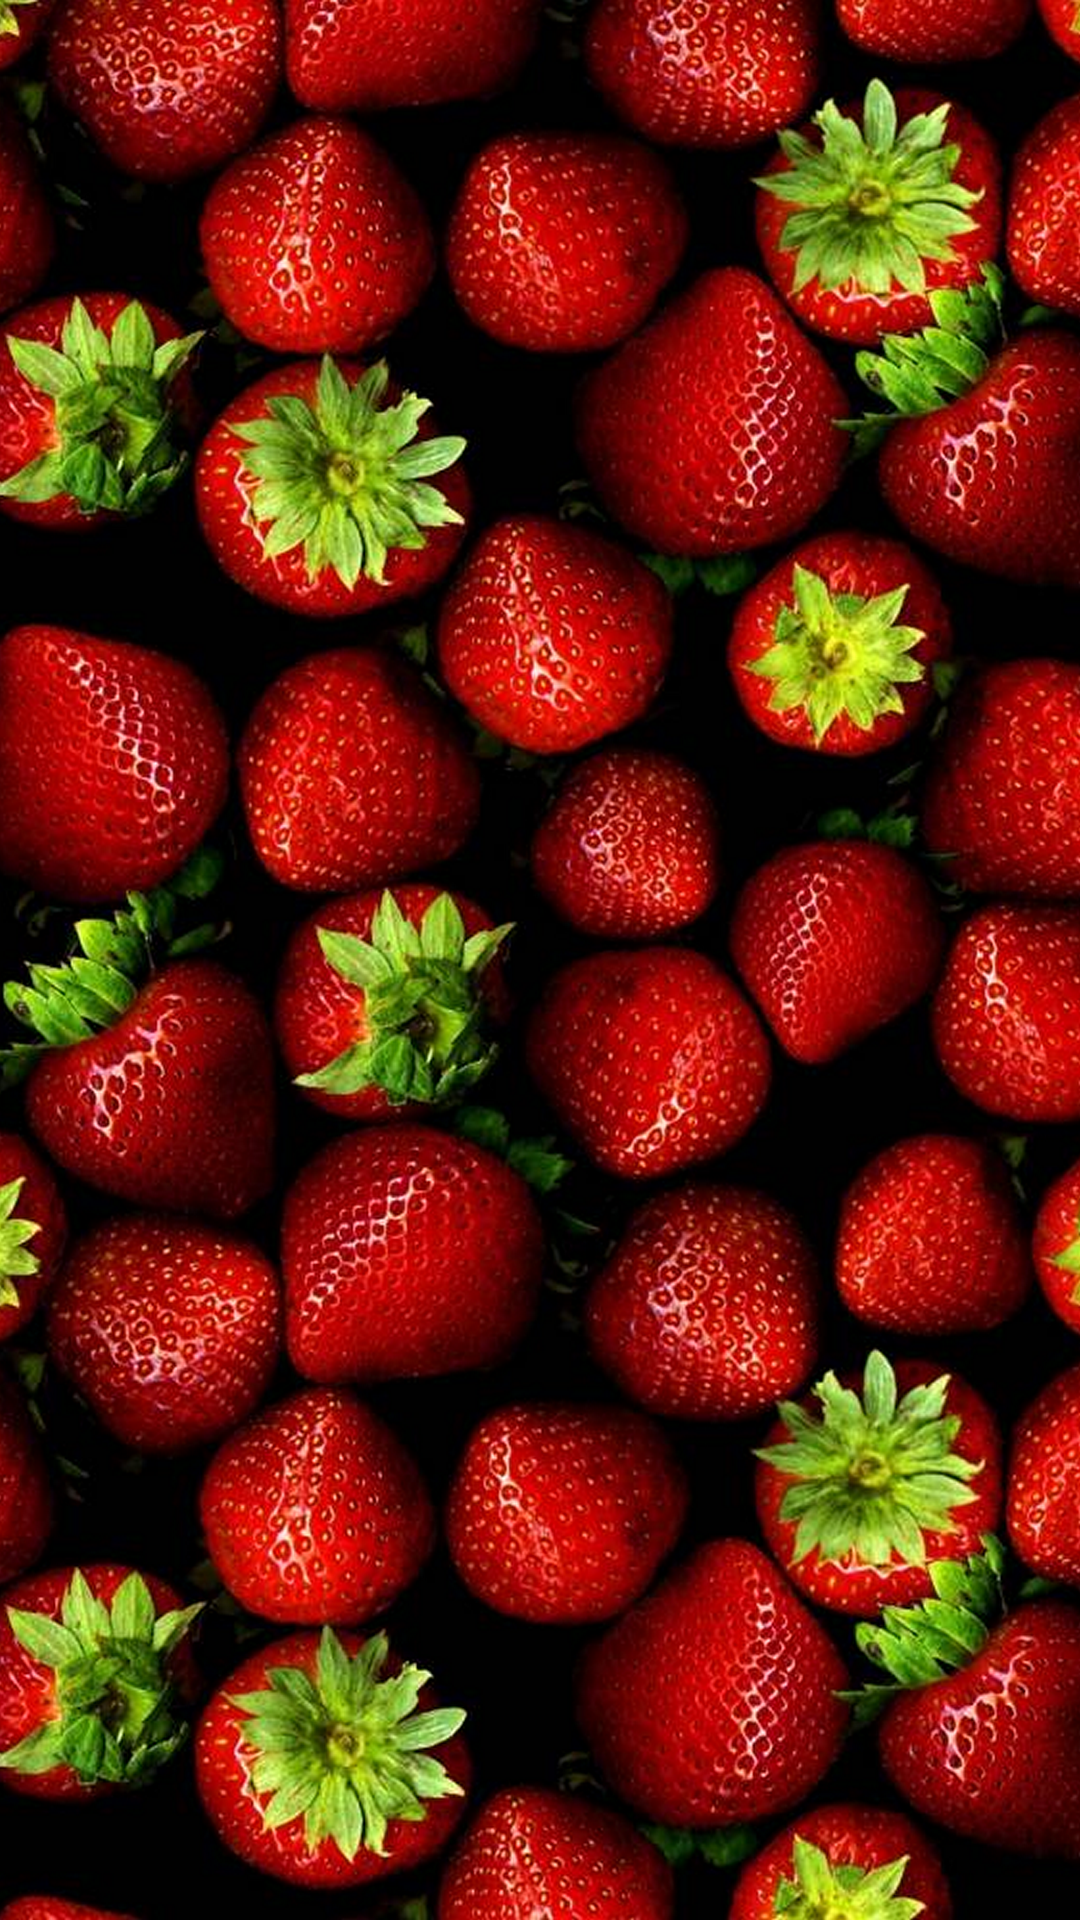 Wallpapers For Samsung Galaxy S4 Thousands Of Hd Wallpapers For Your Samsung Smartphone In 1080 Pantallas De Frutas Fondos De Frutas Fondo De Pantalla Frutas